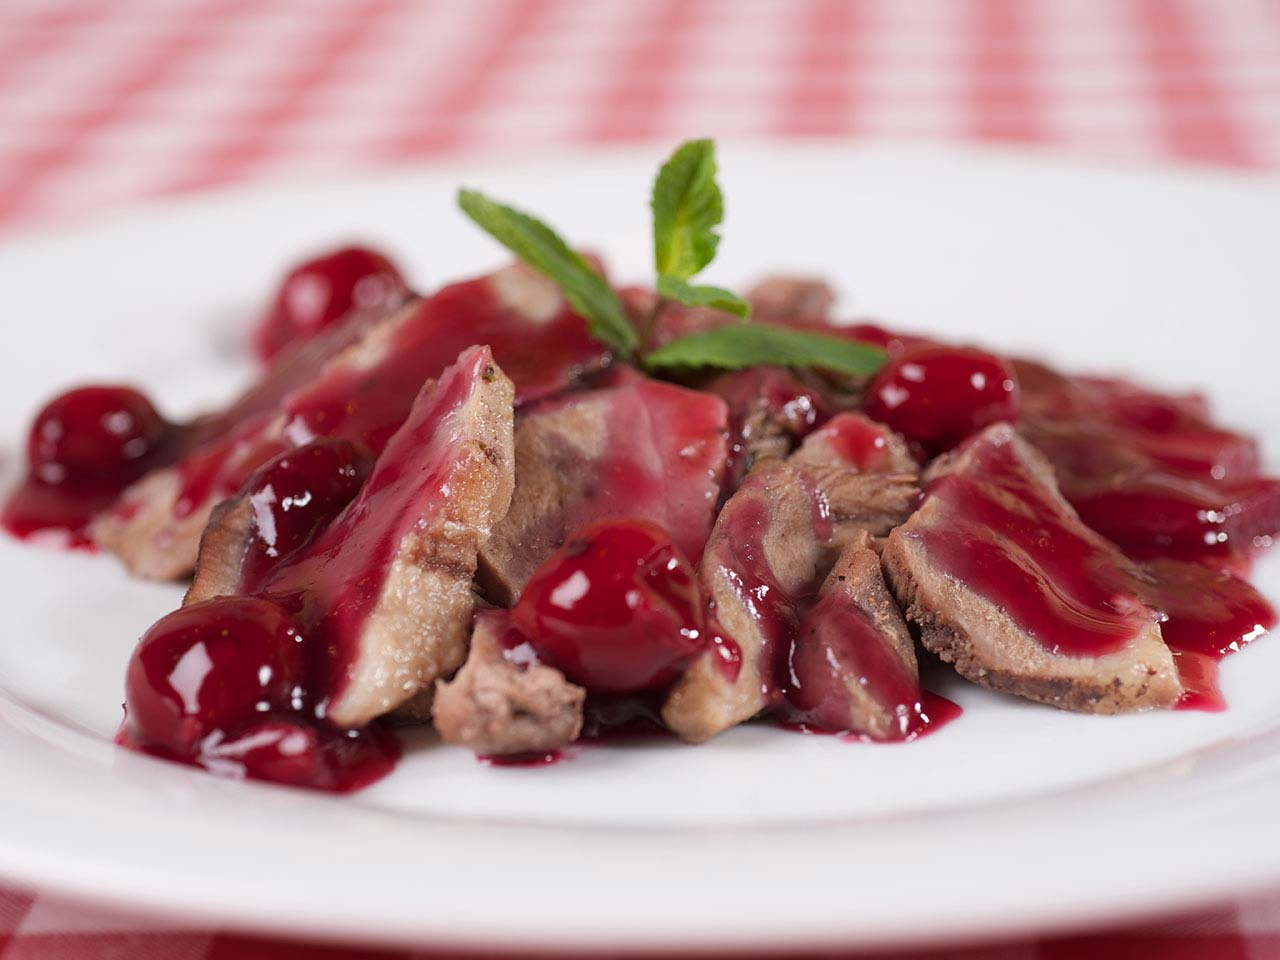 Duck breast with cherries on a place on table